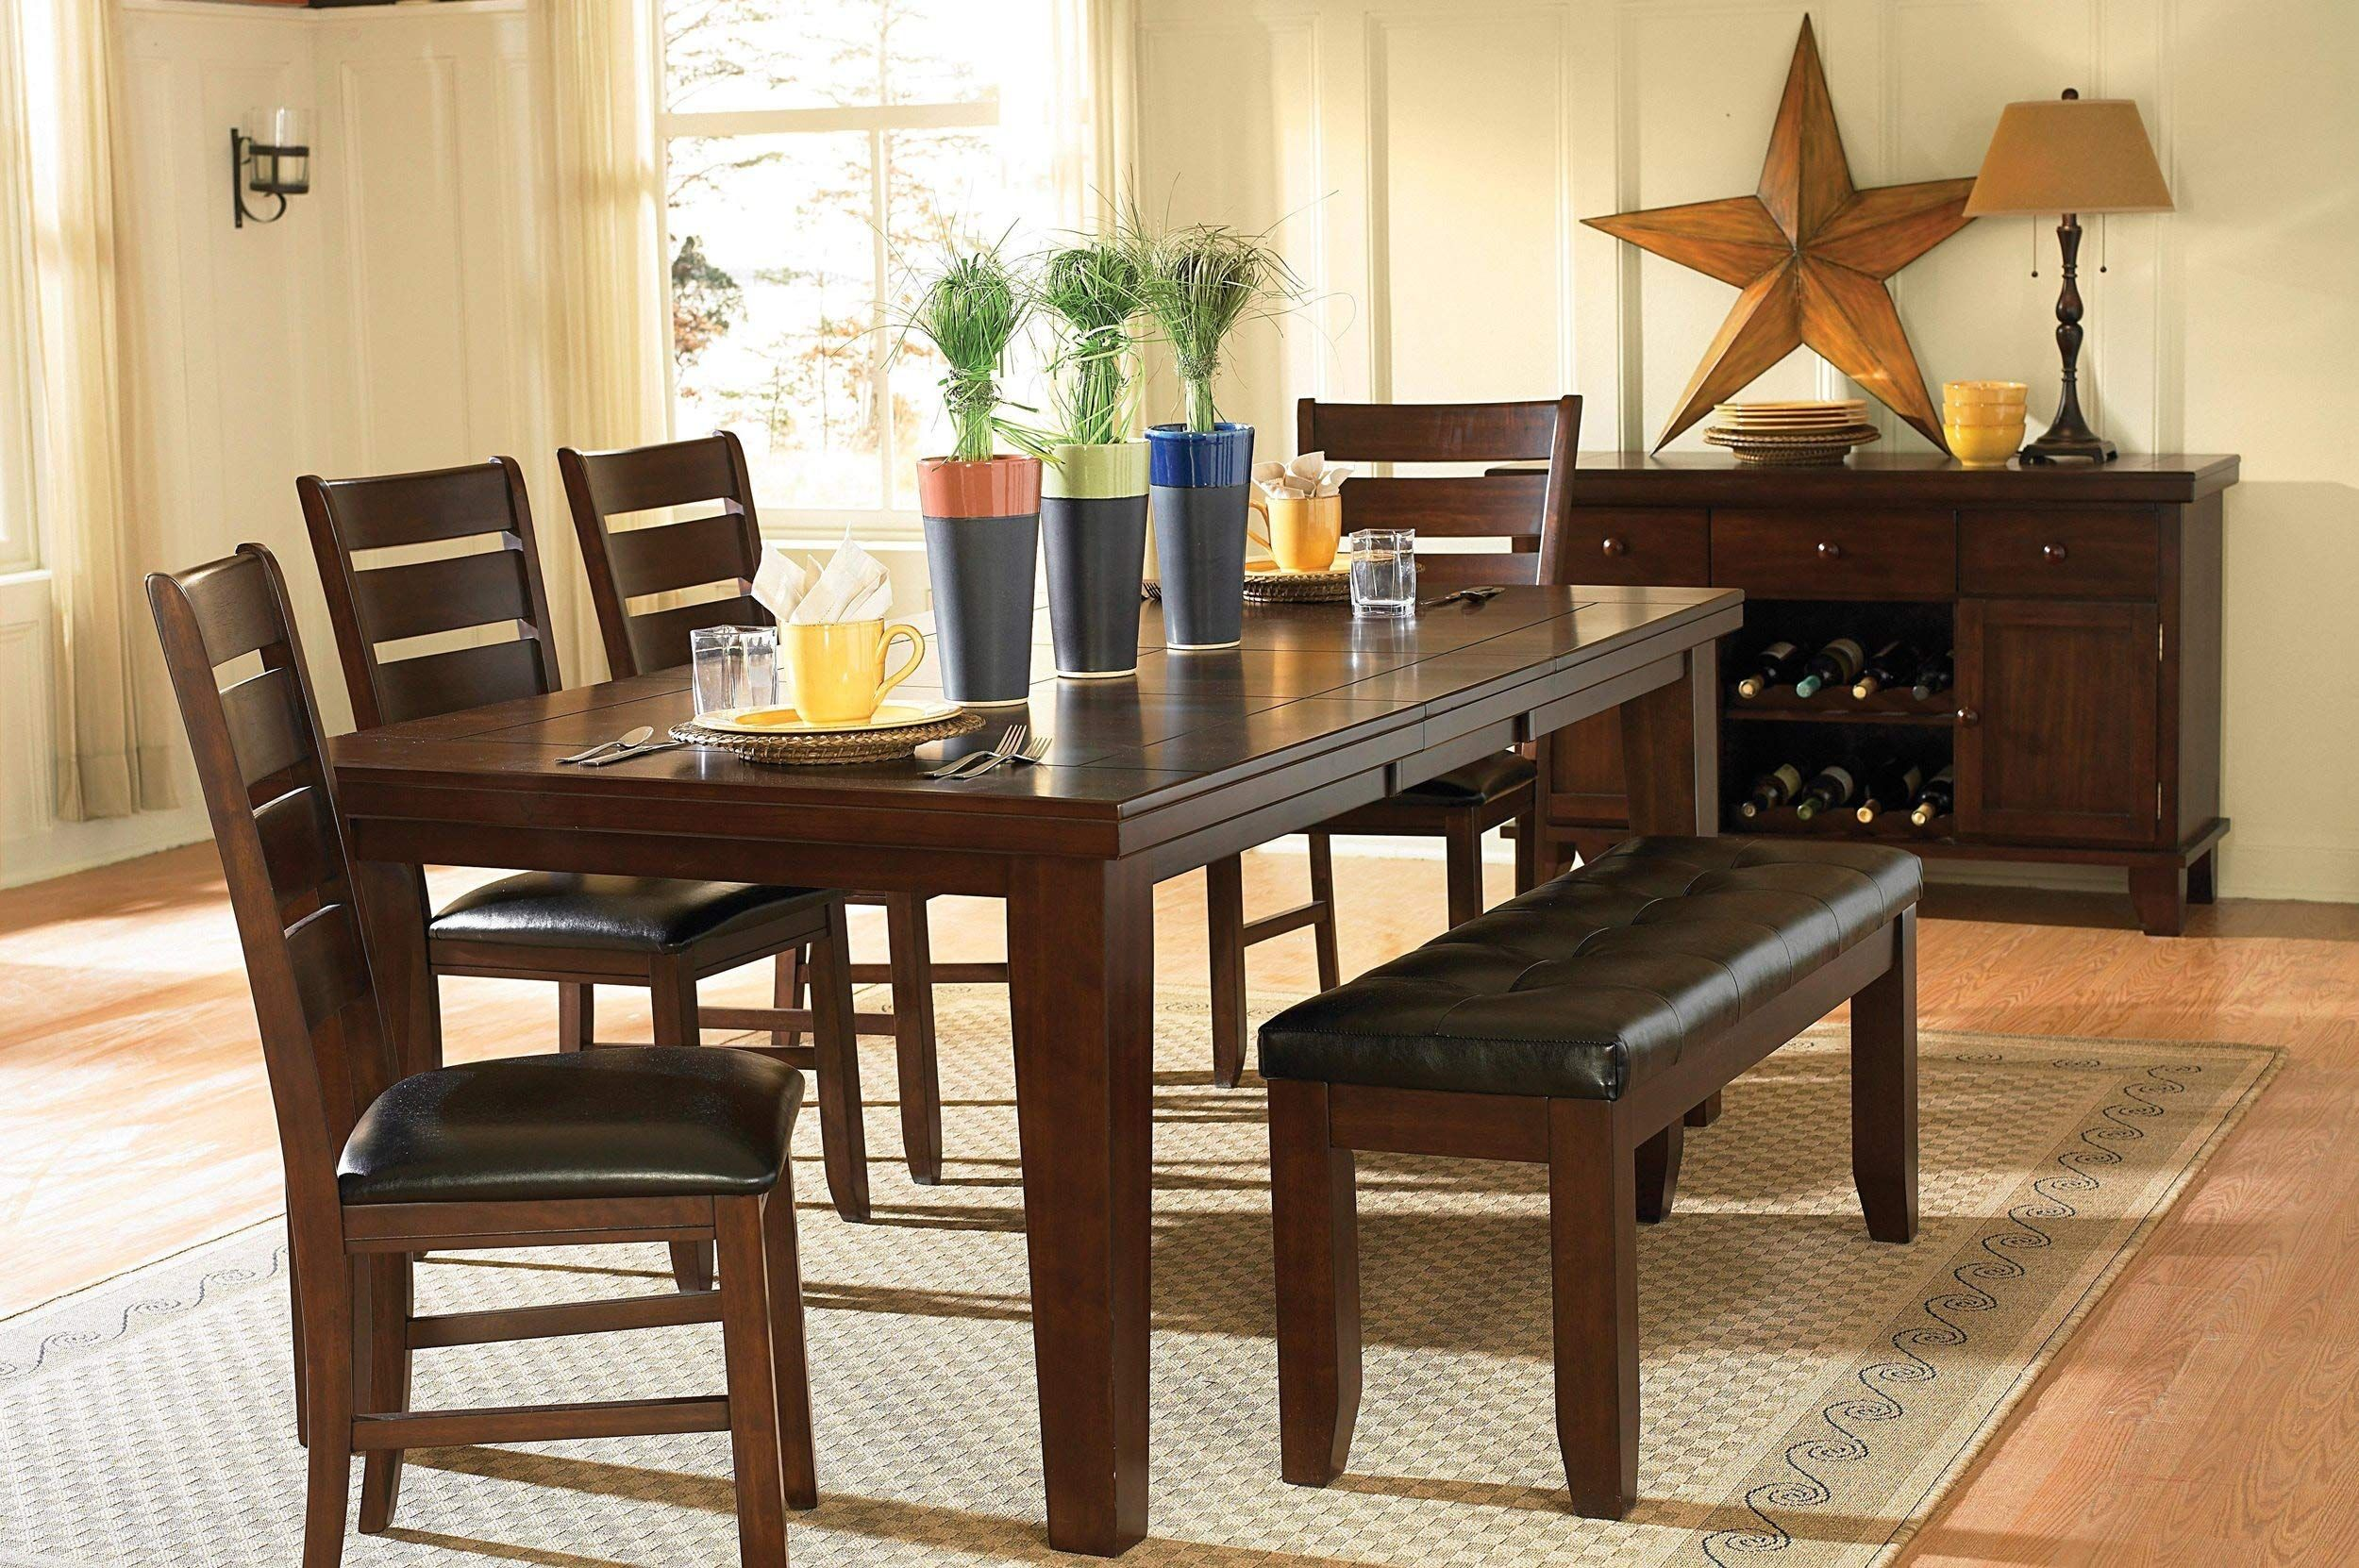 dining chairs and bench